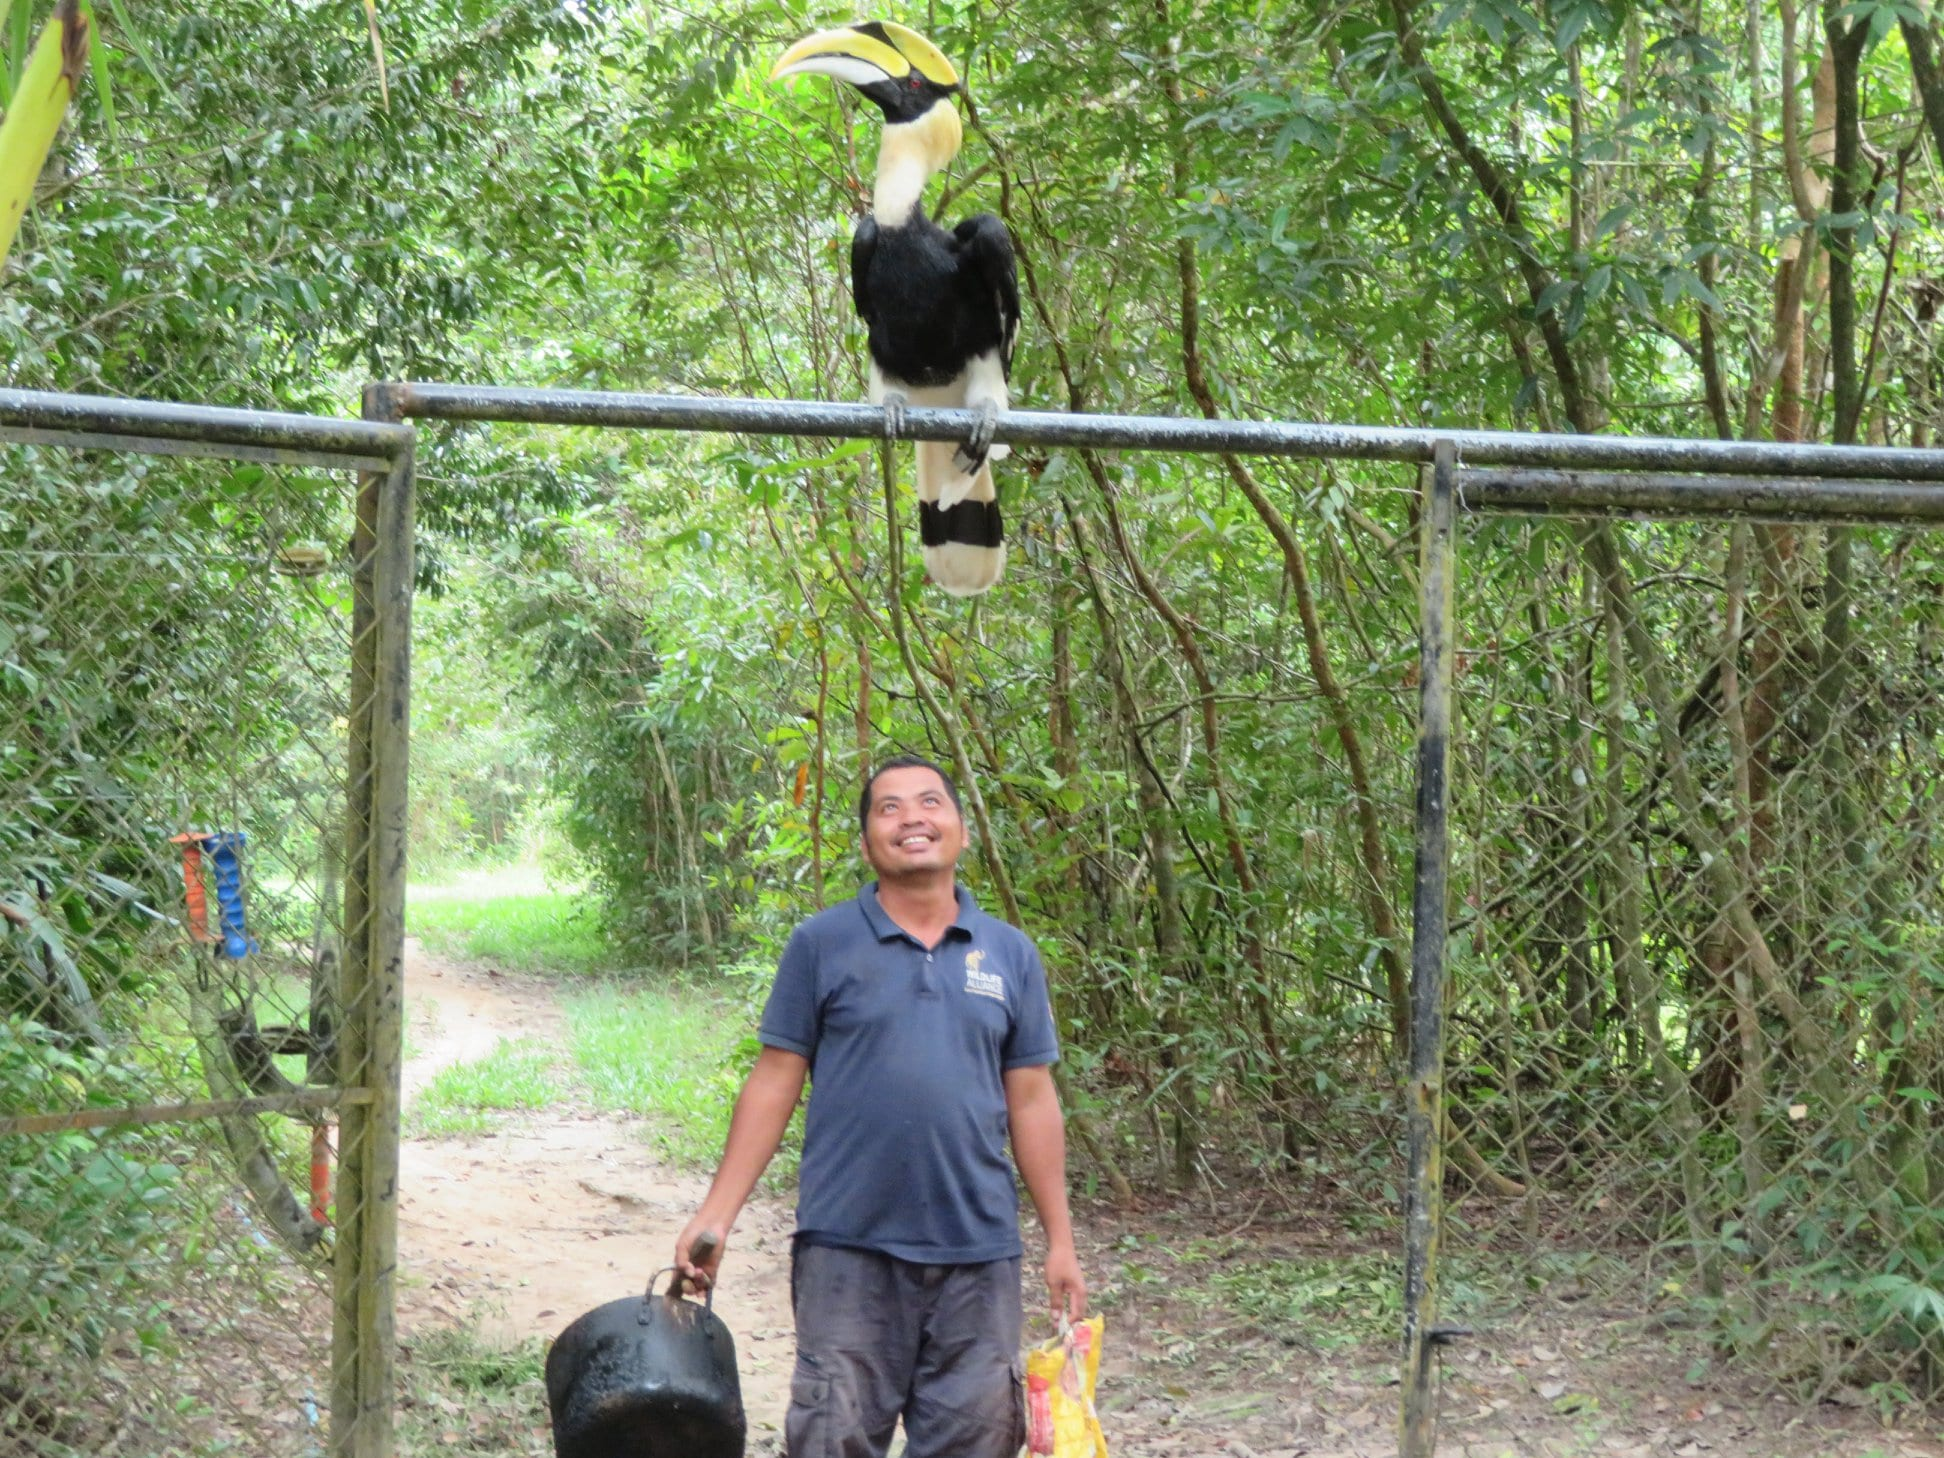 Great hornbill enjoys a slow transition to a life in the wild